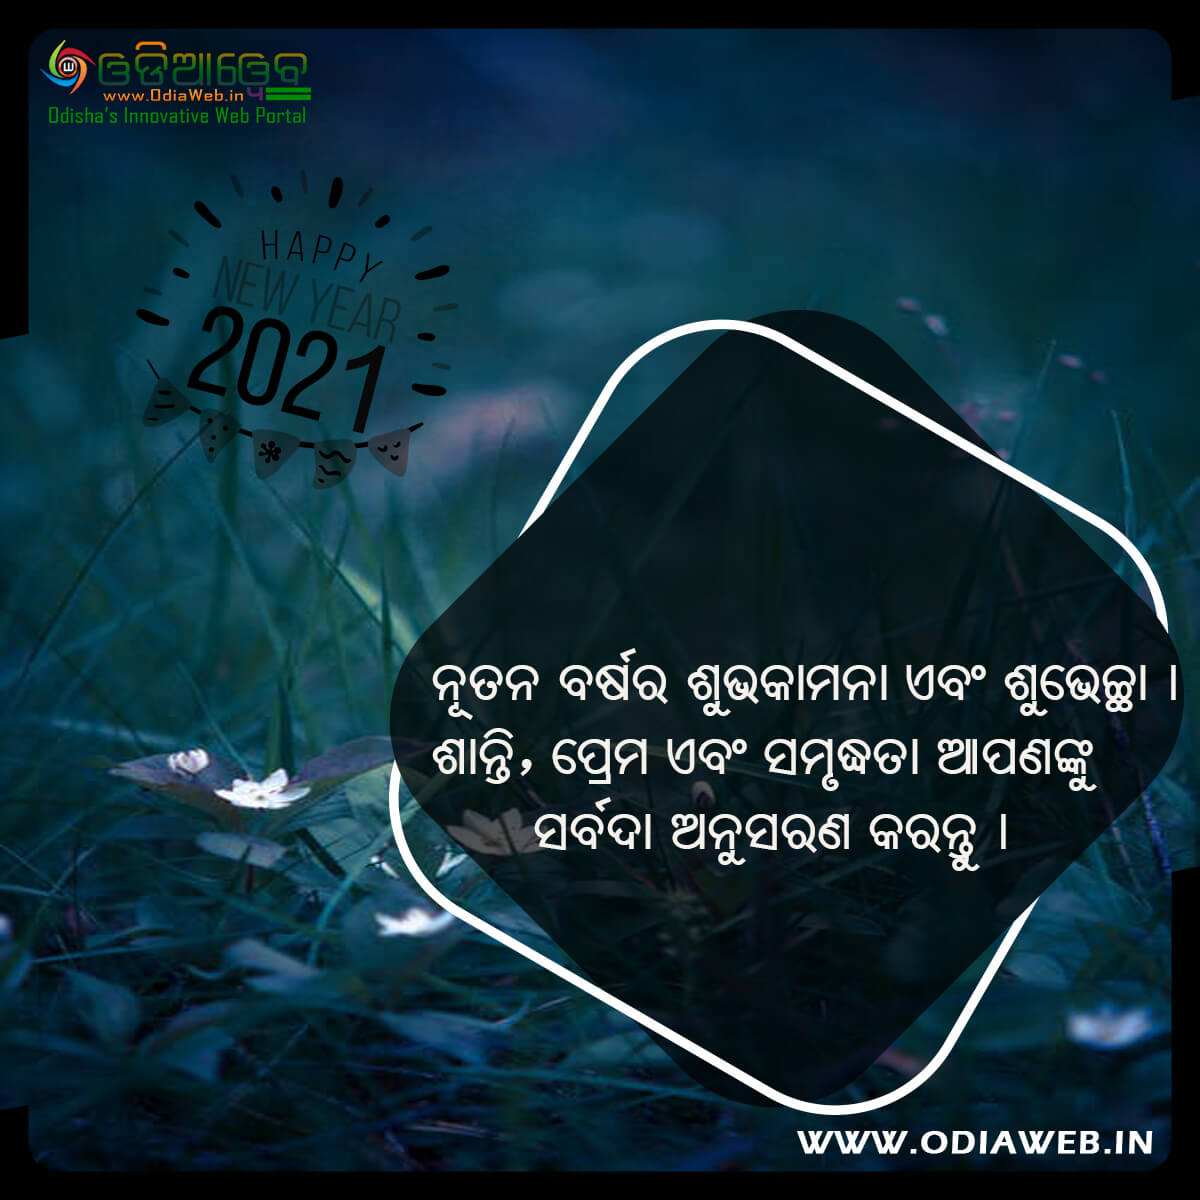 Happy New Year 2021 Wishes Odia (7)